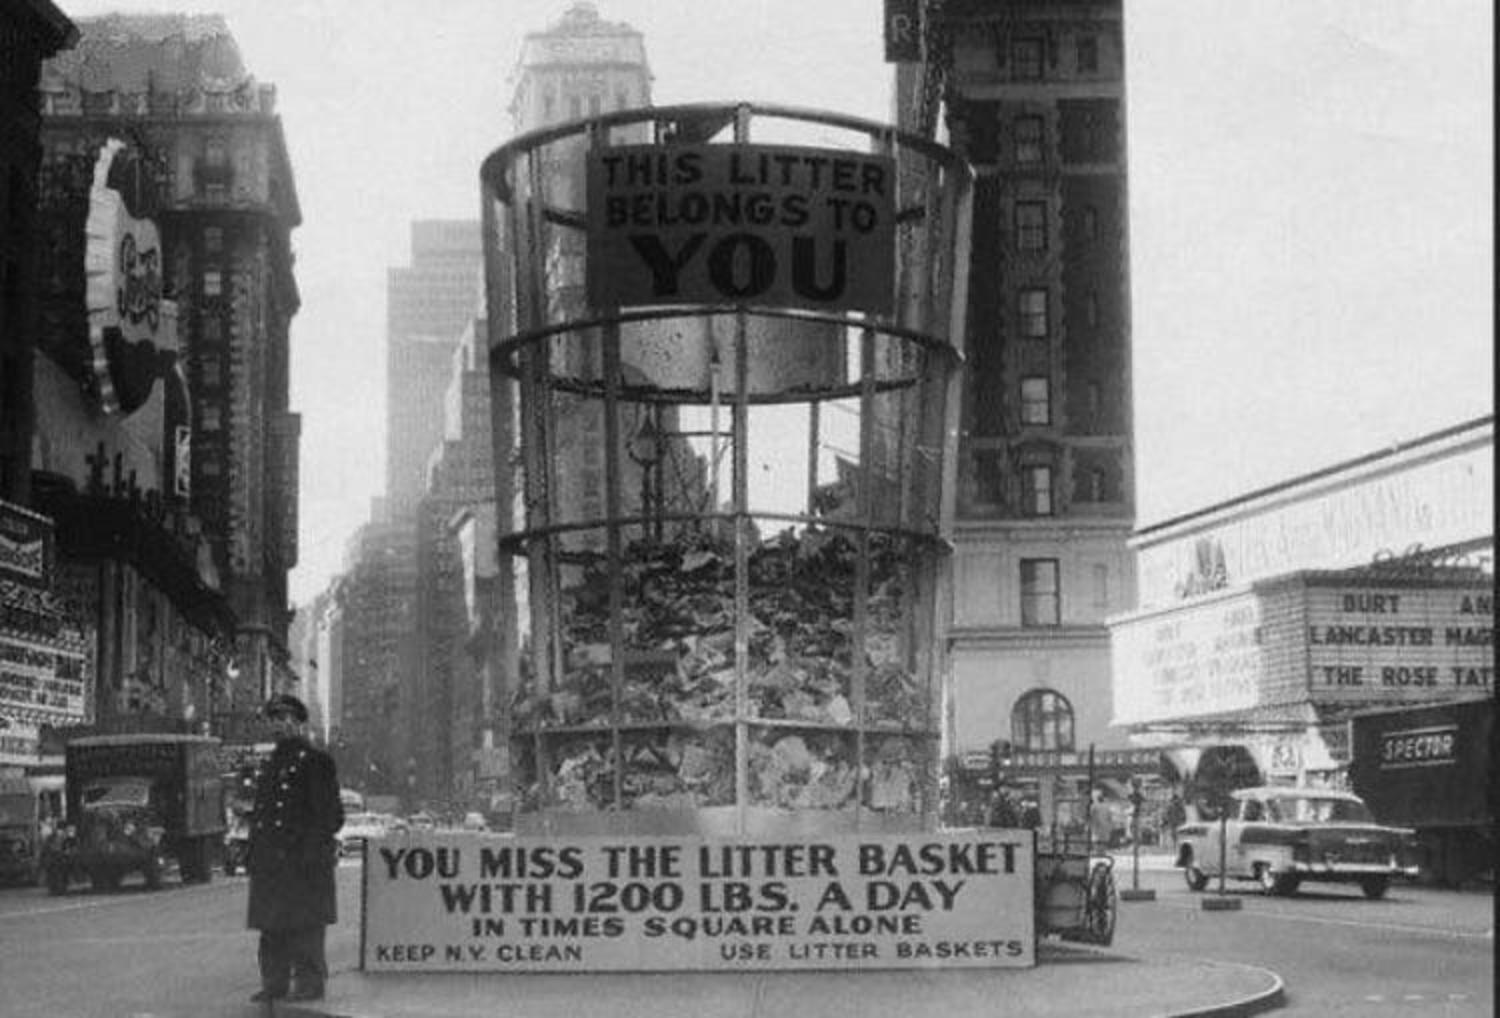 Old school public shaming in Times Square, 1955